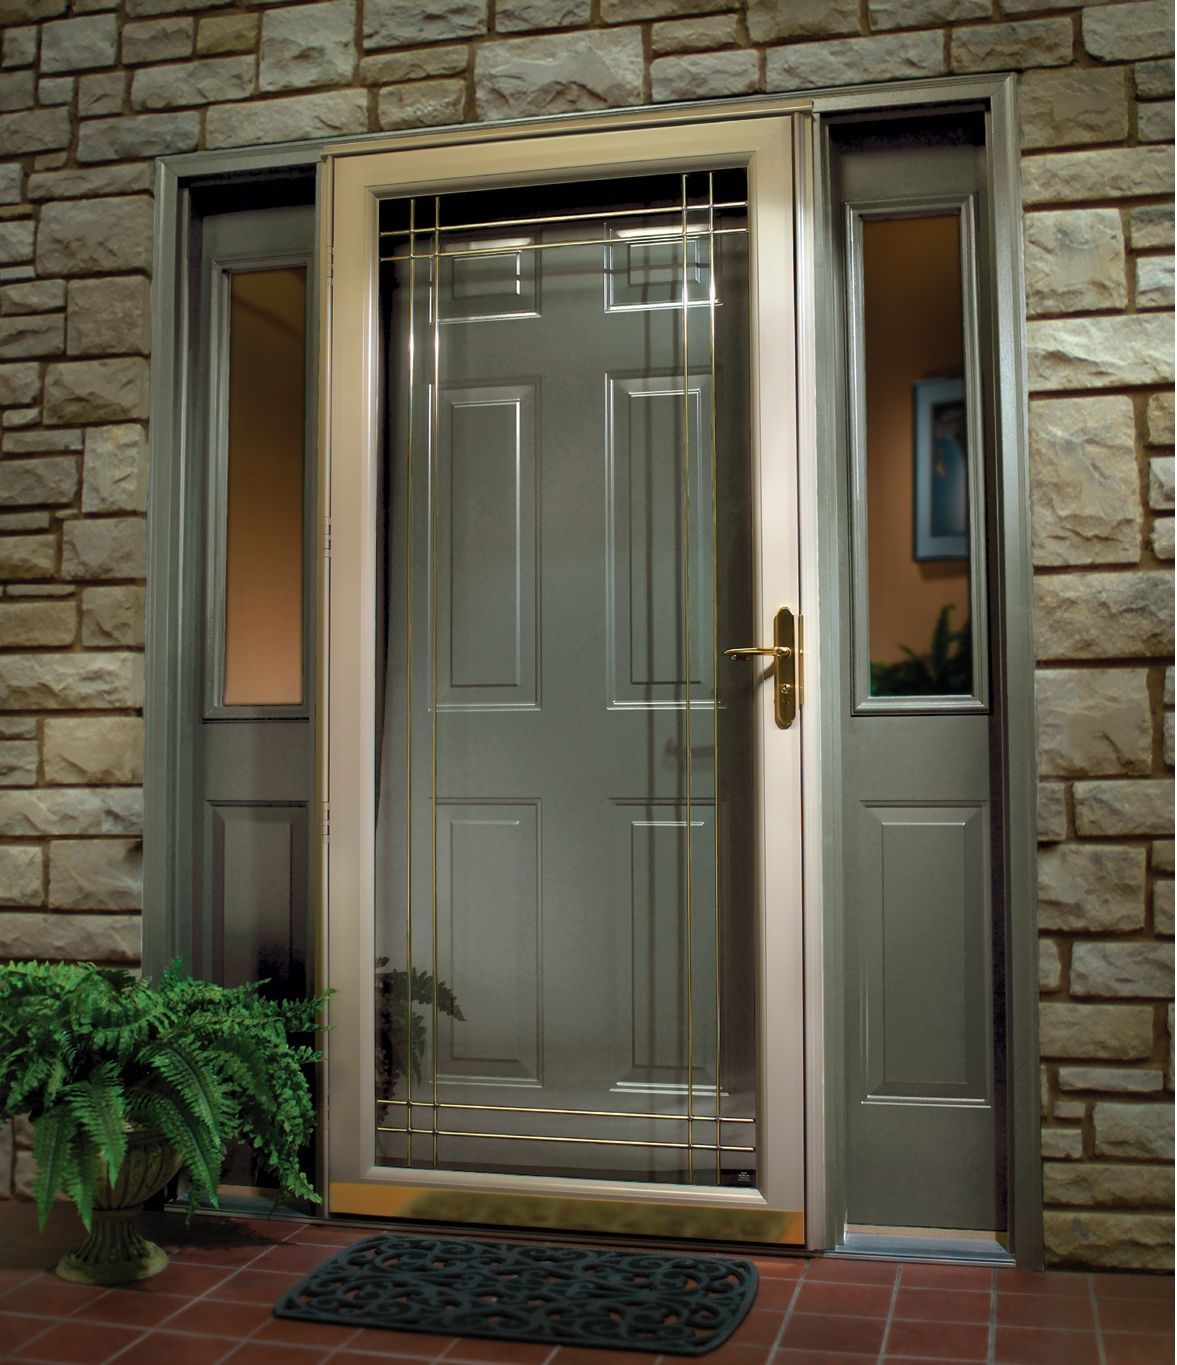 Exterior doors for homes front door ideas front entry for Exterior doors and windows